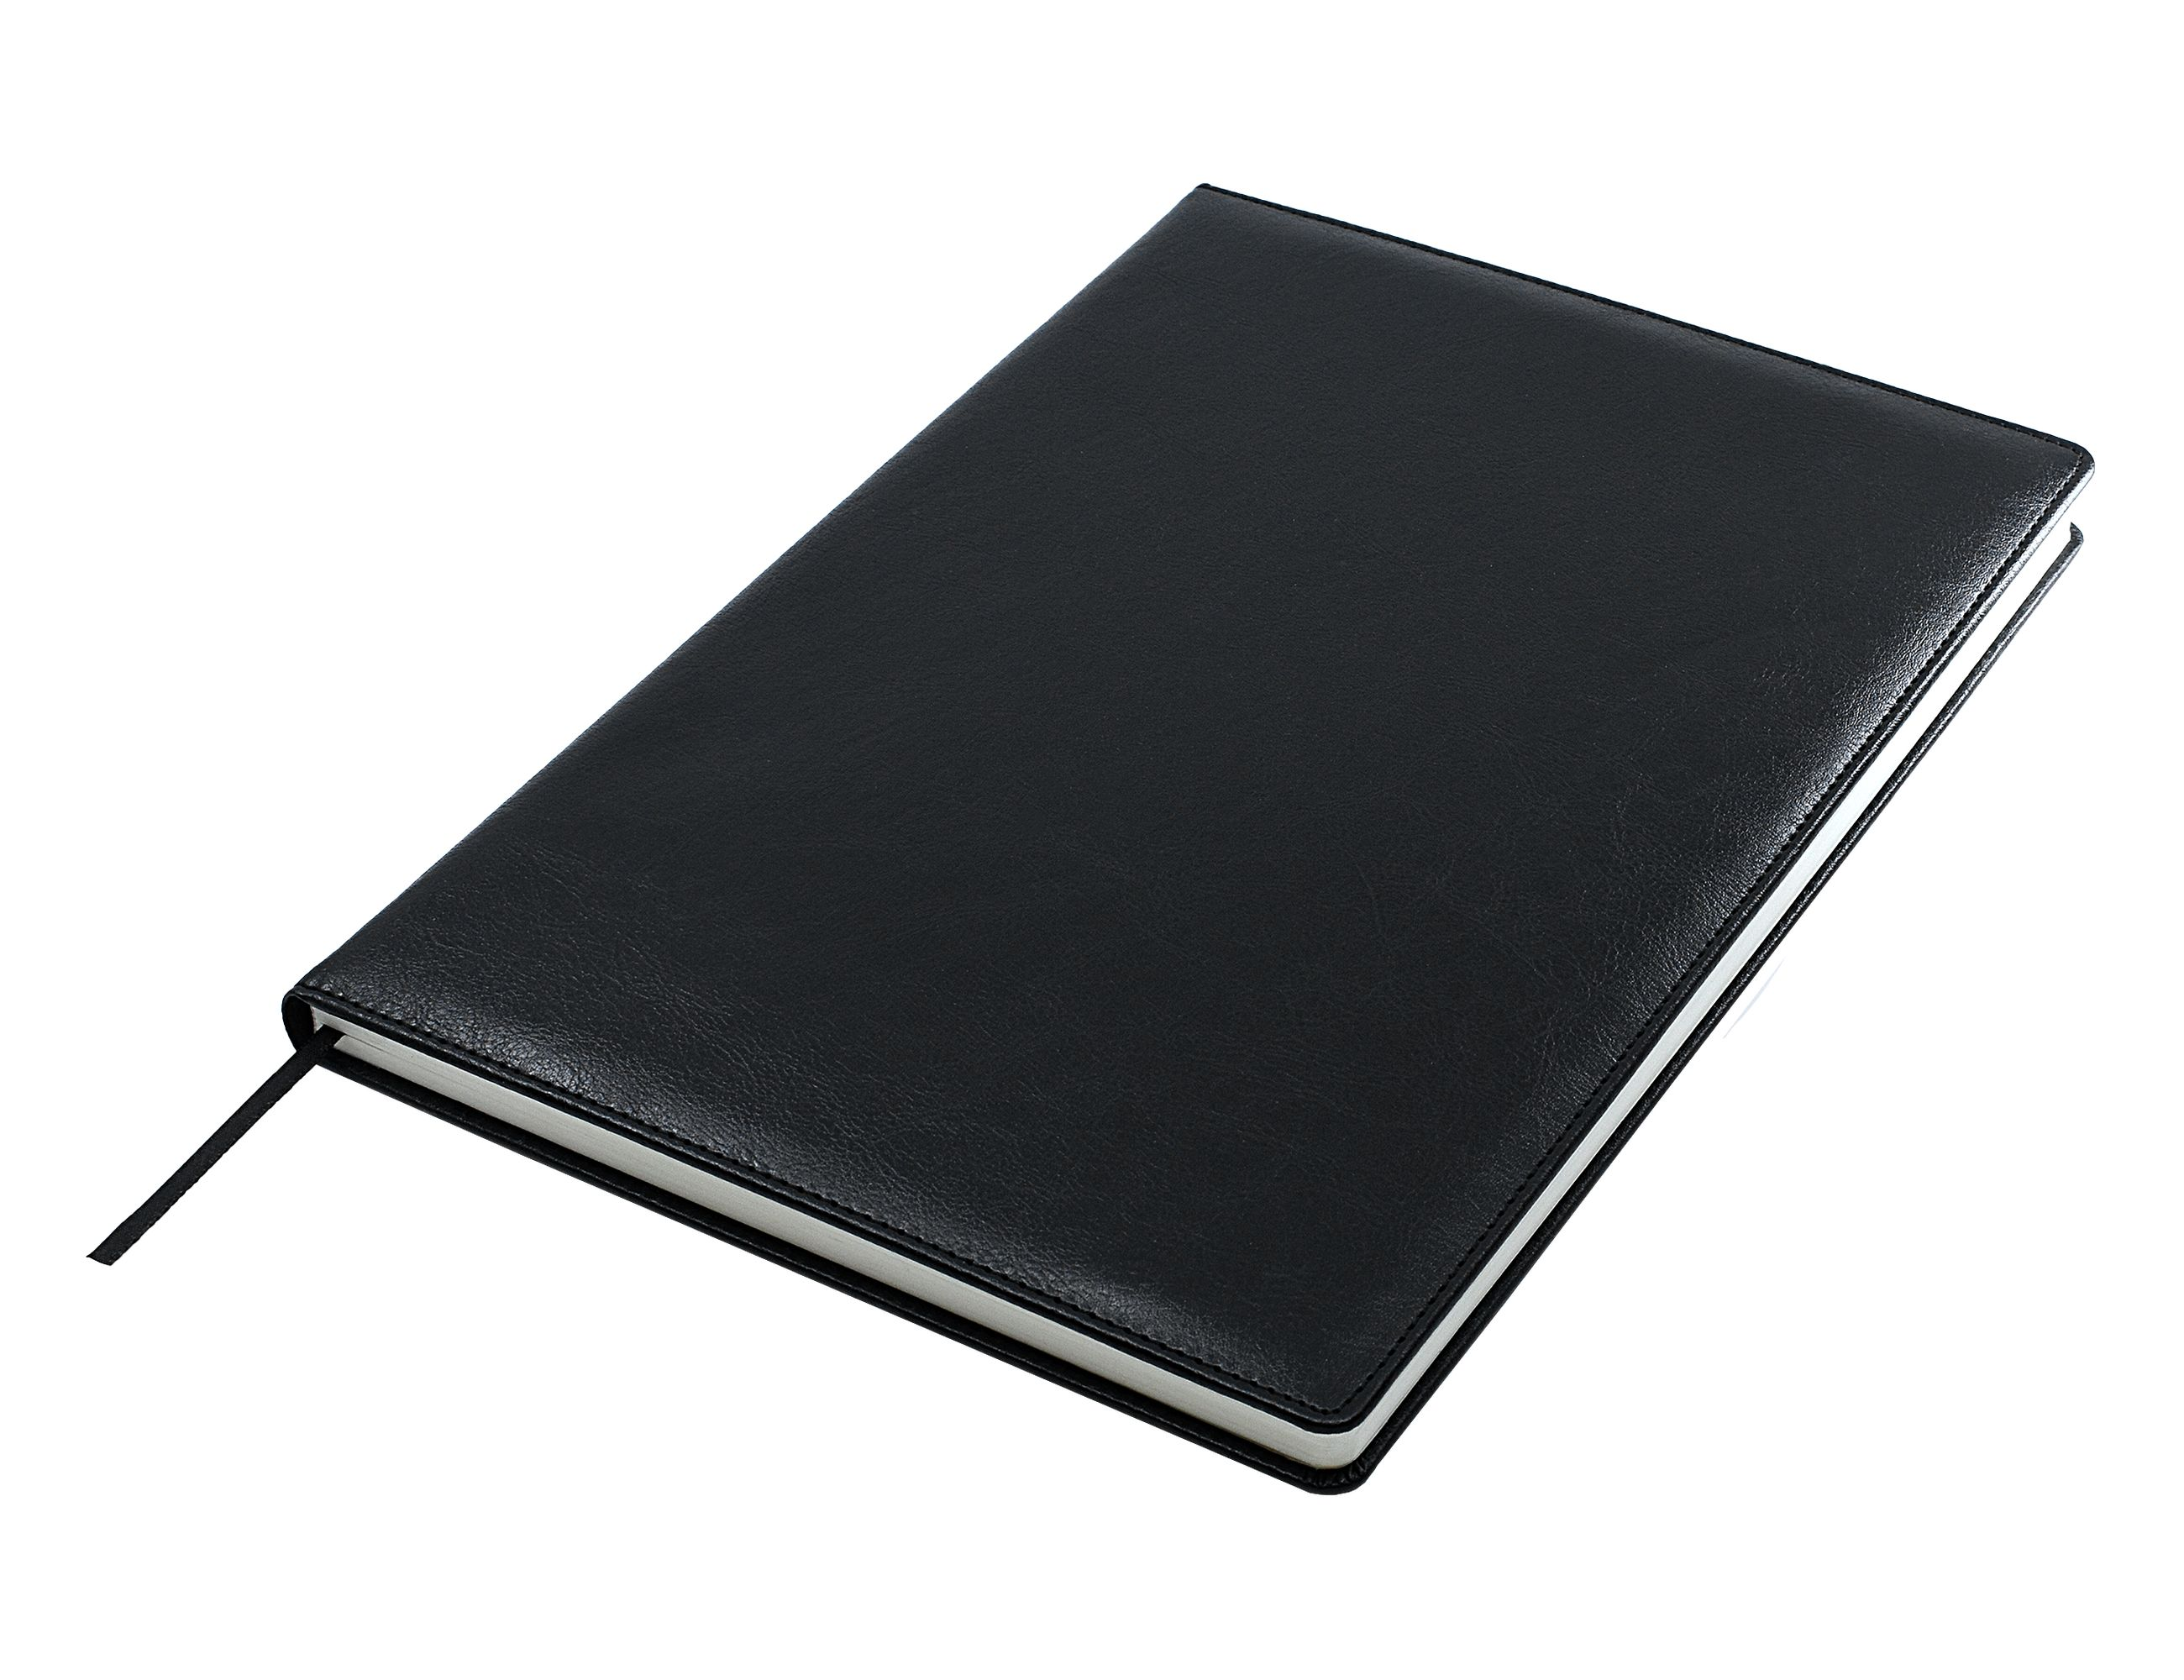 Promotional Product Pinnacle A4 Notebook, Black